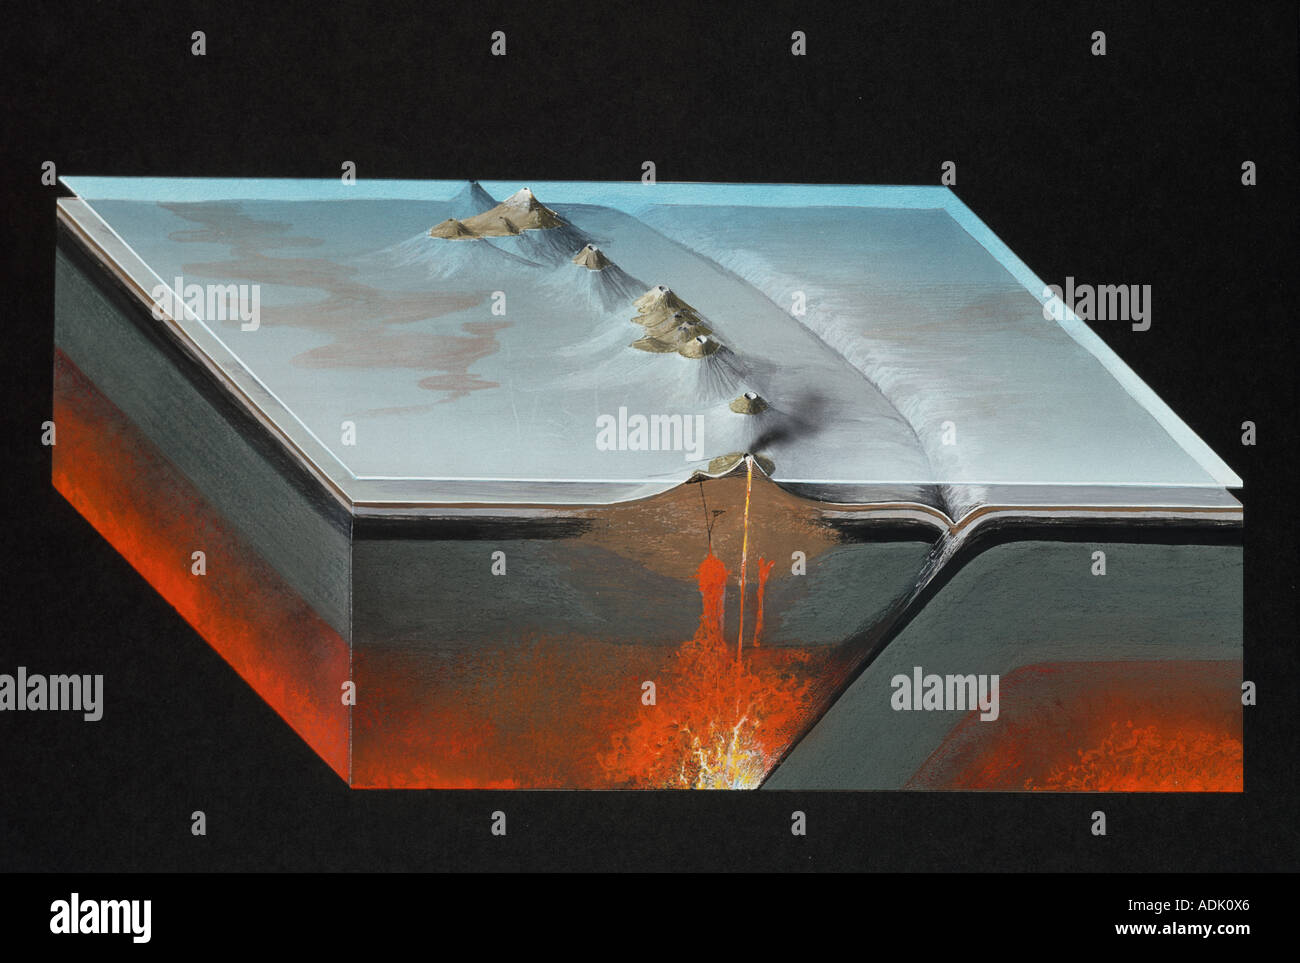 Oceanic subduction zone with island arc - Stock Image